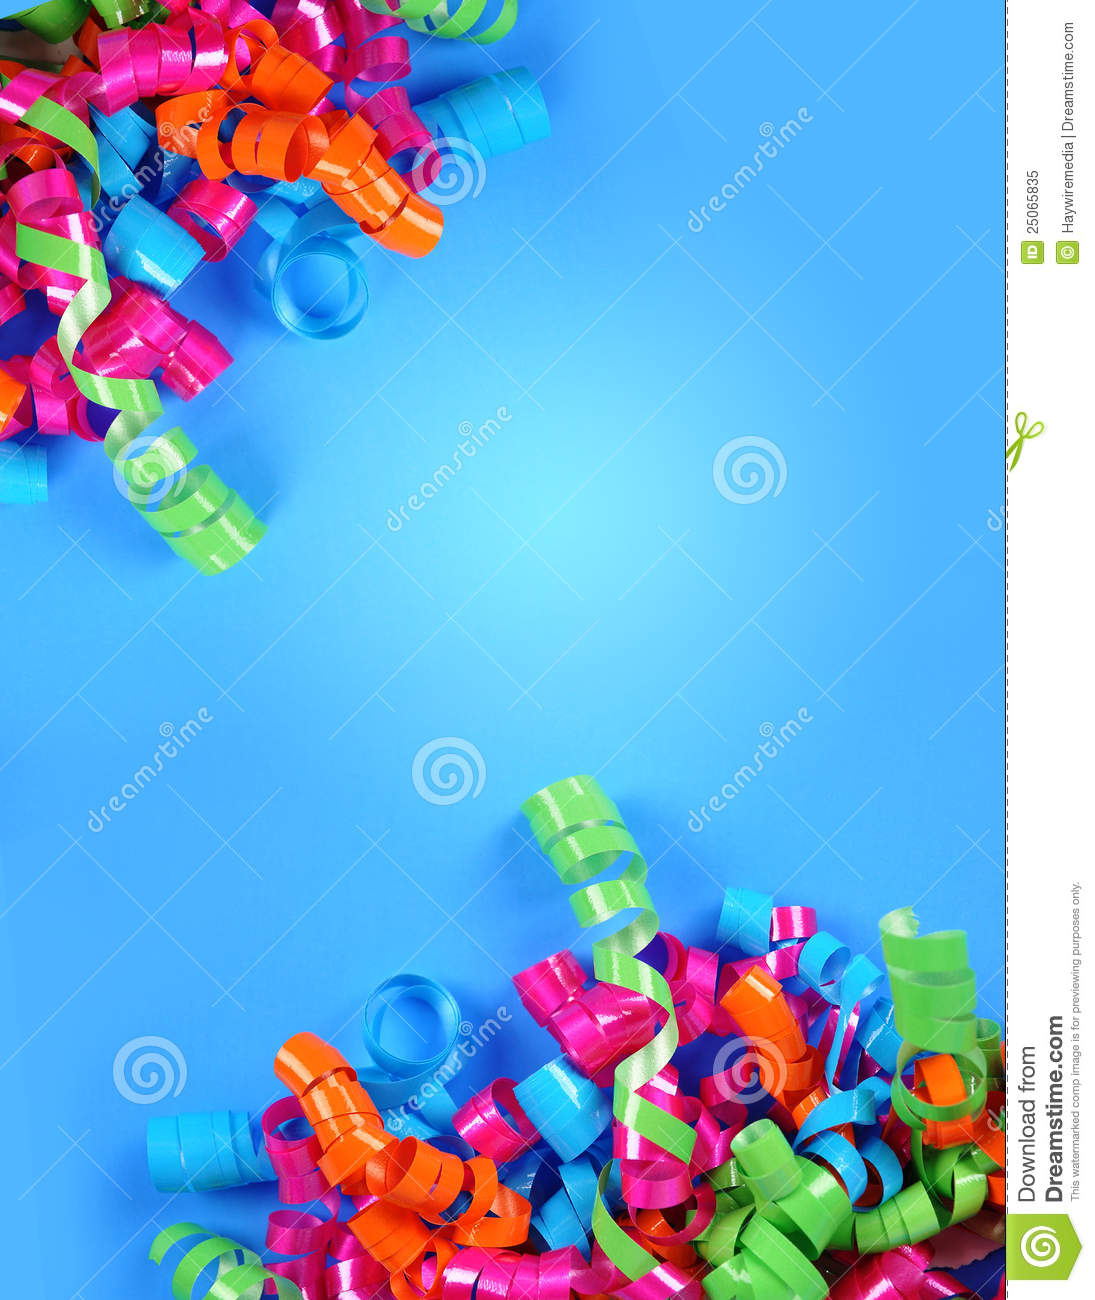 Party Streamer Celebration Background Royalty Free Stock Photo - Image ...